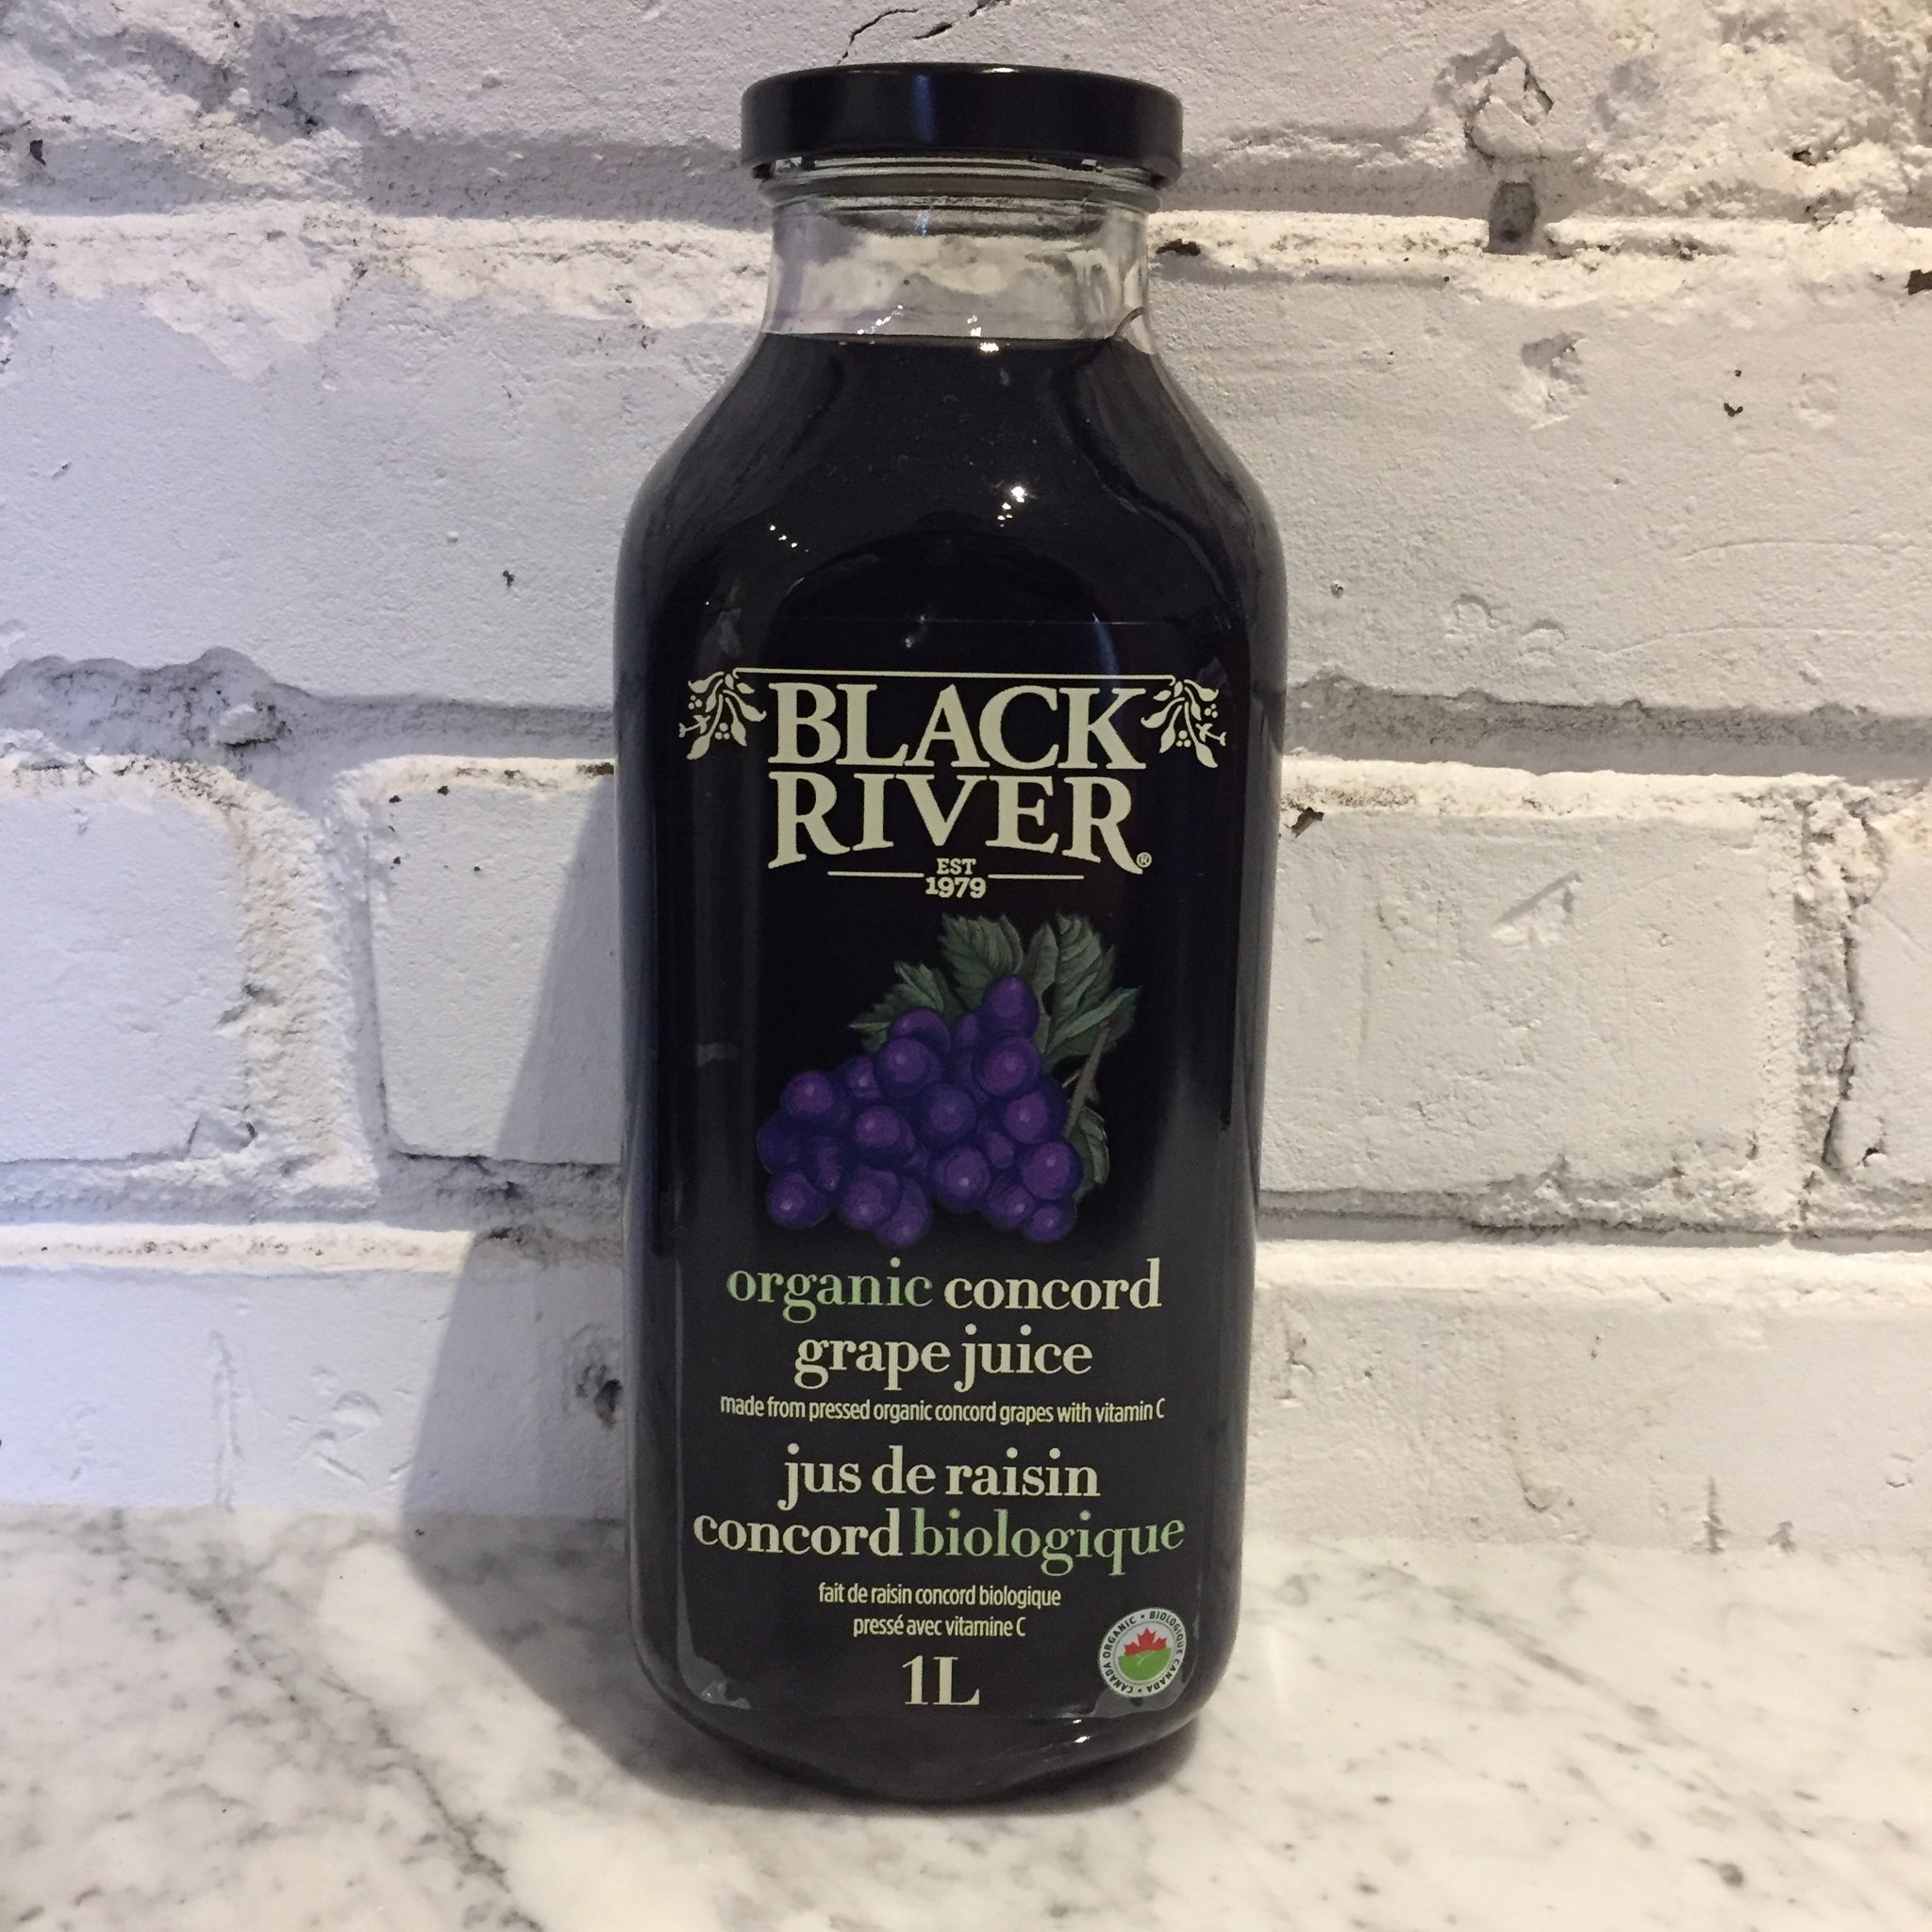 Black River Organic Concord Grape Juice